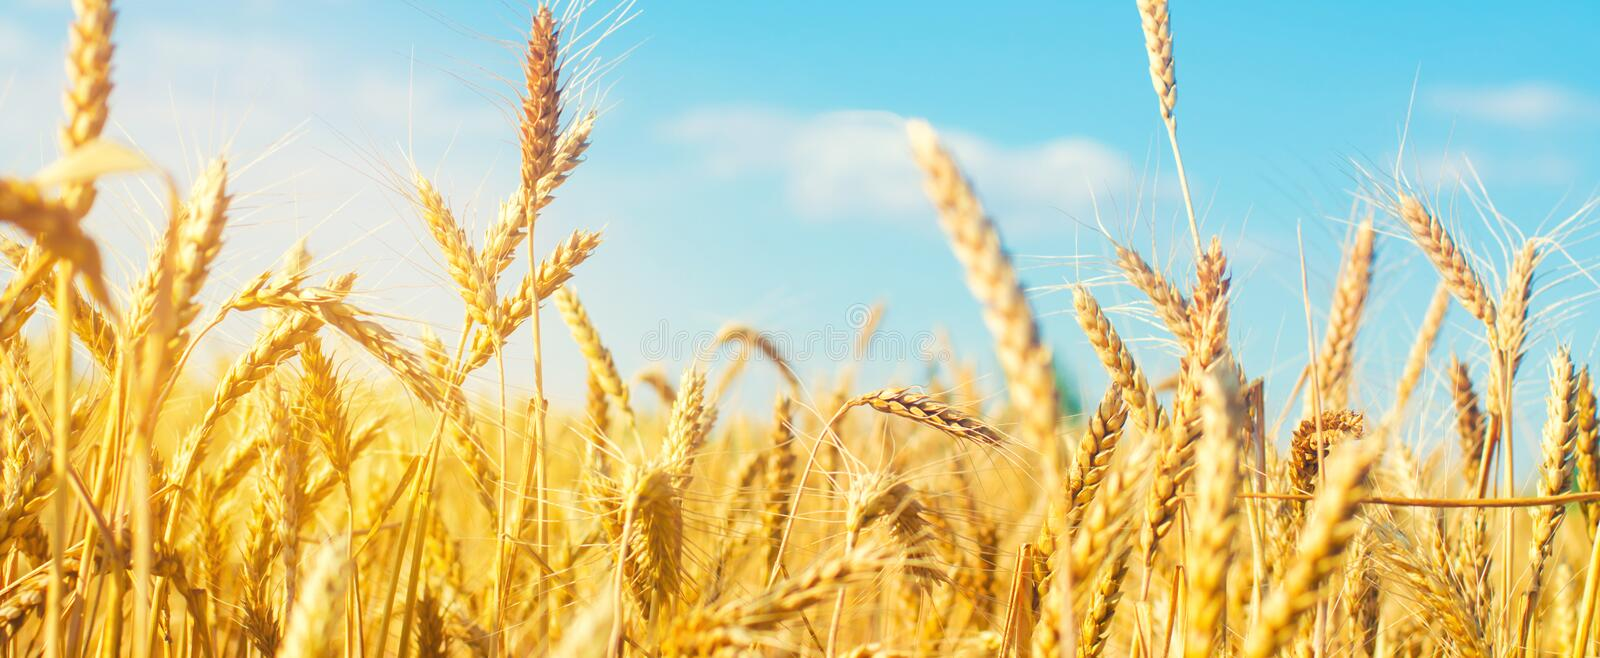 Beautiful view of the wheat field and blue sky in the countryside. Cultivation of crops. Agriculture and farming. Agro industry. Ukraine, Kherson region royalty free stock image